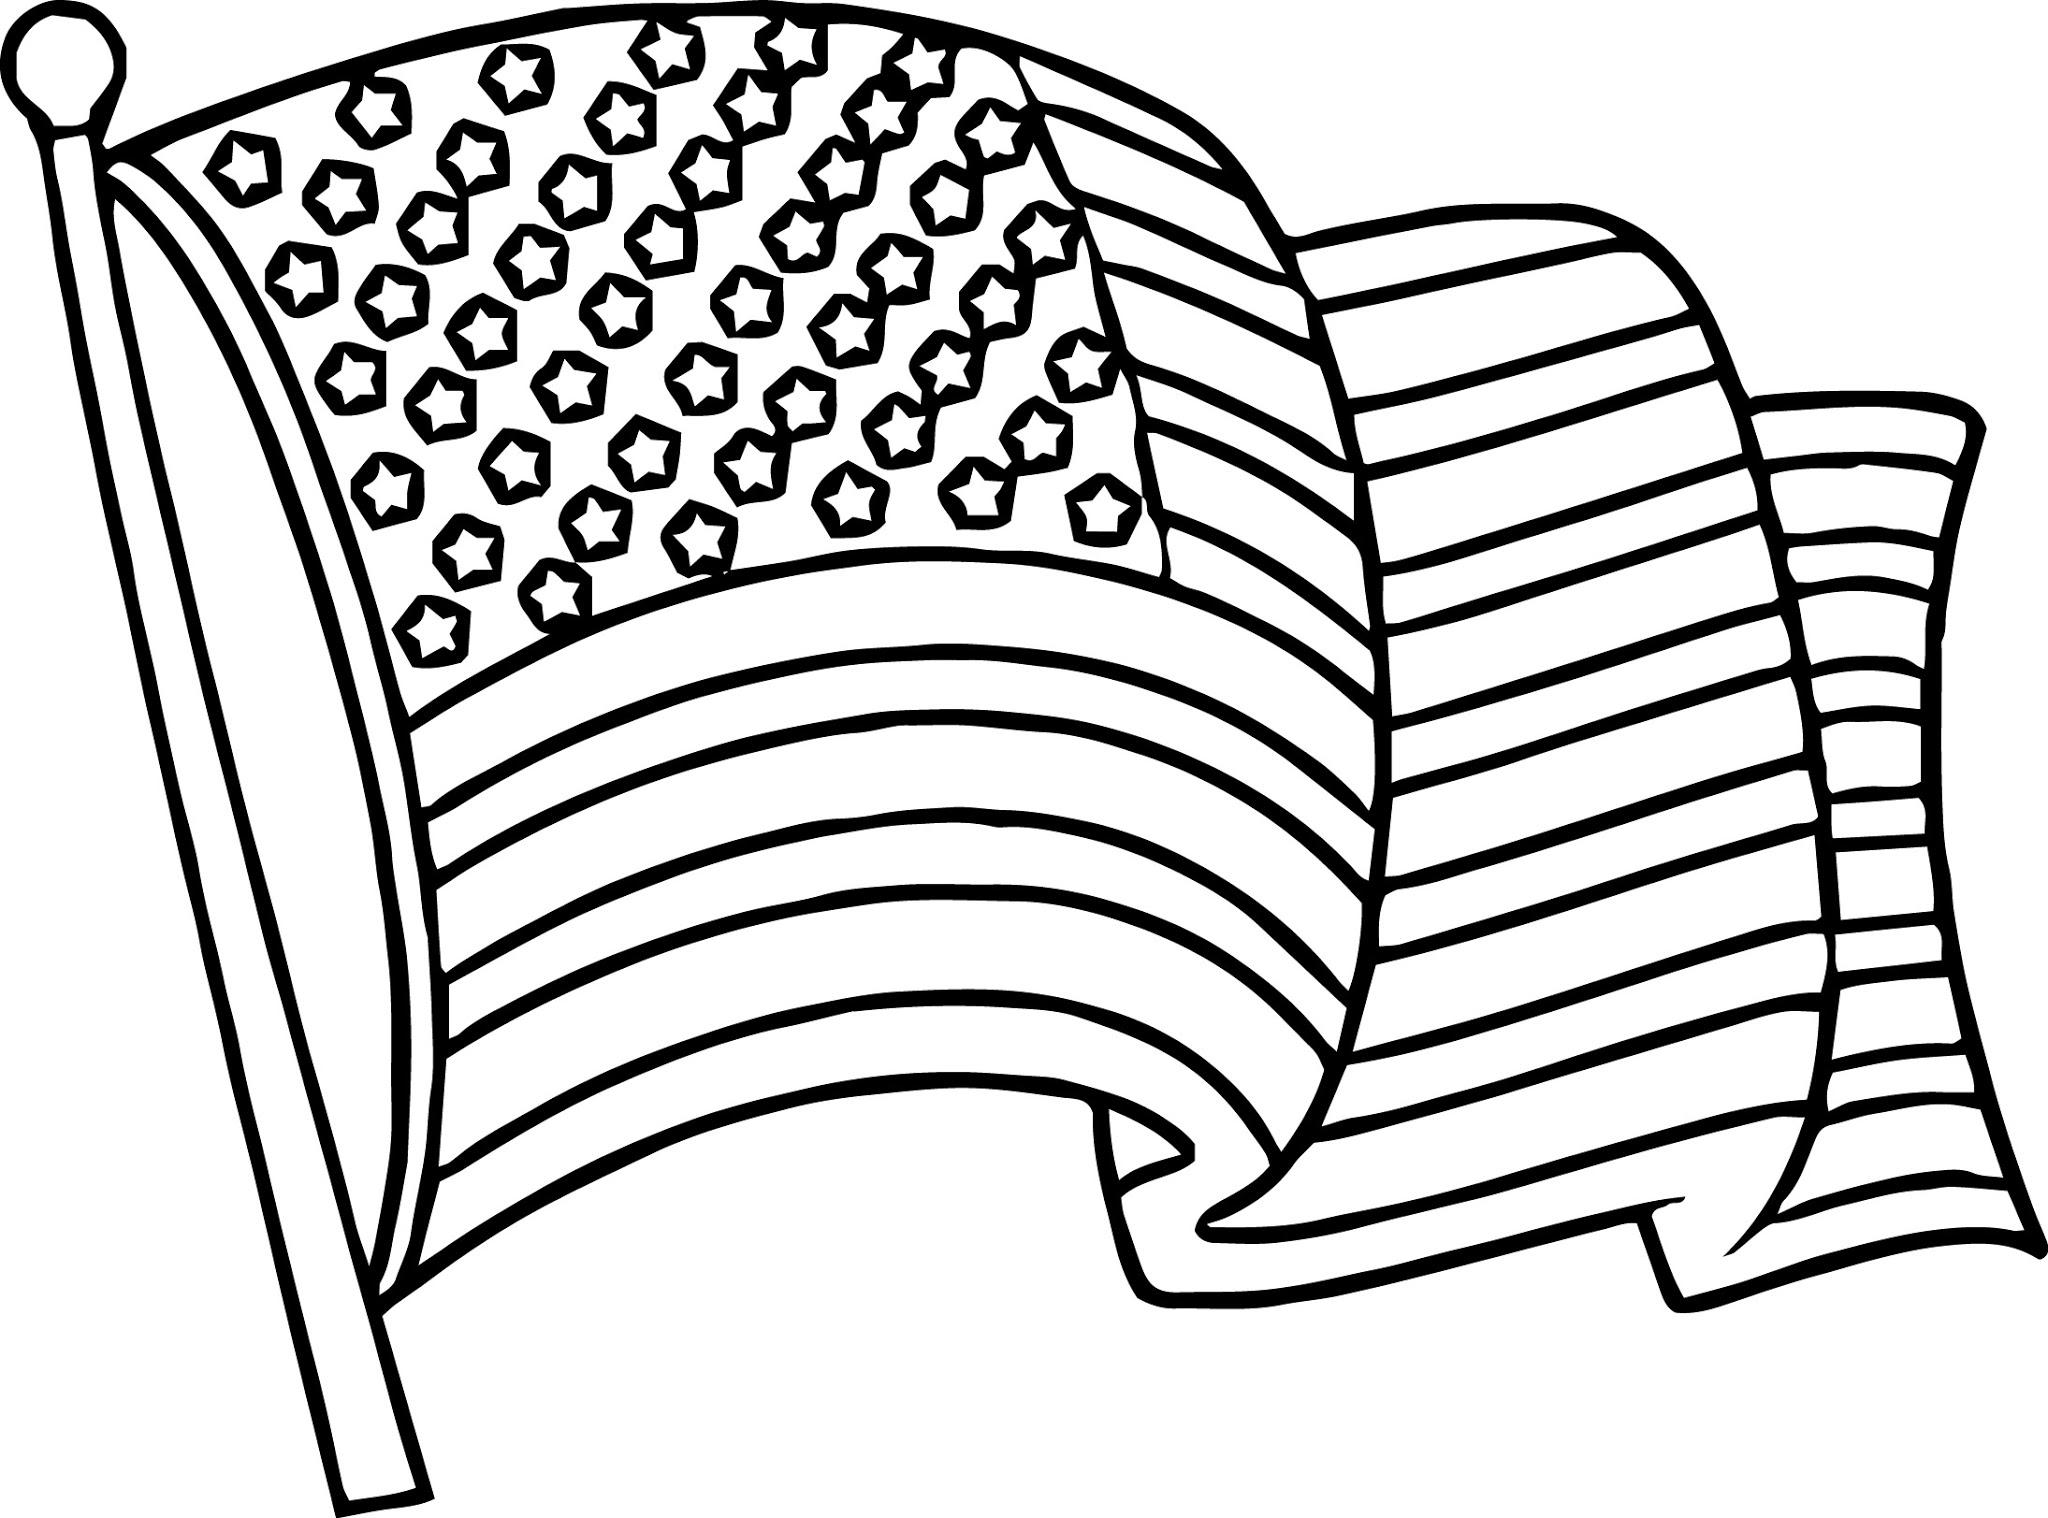 2048x1518 coloring sheet united states flag coloring sheet - Coloring Page United States